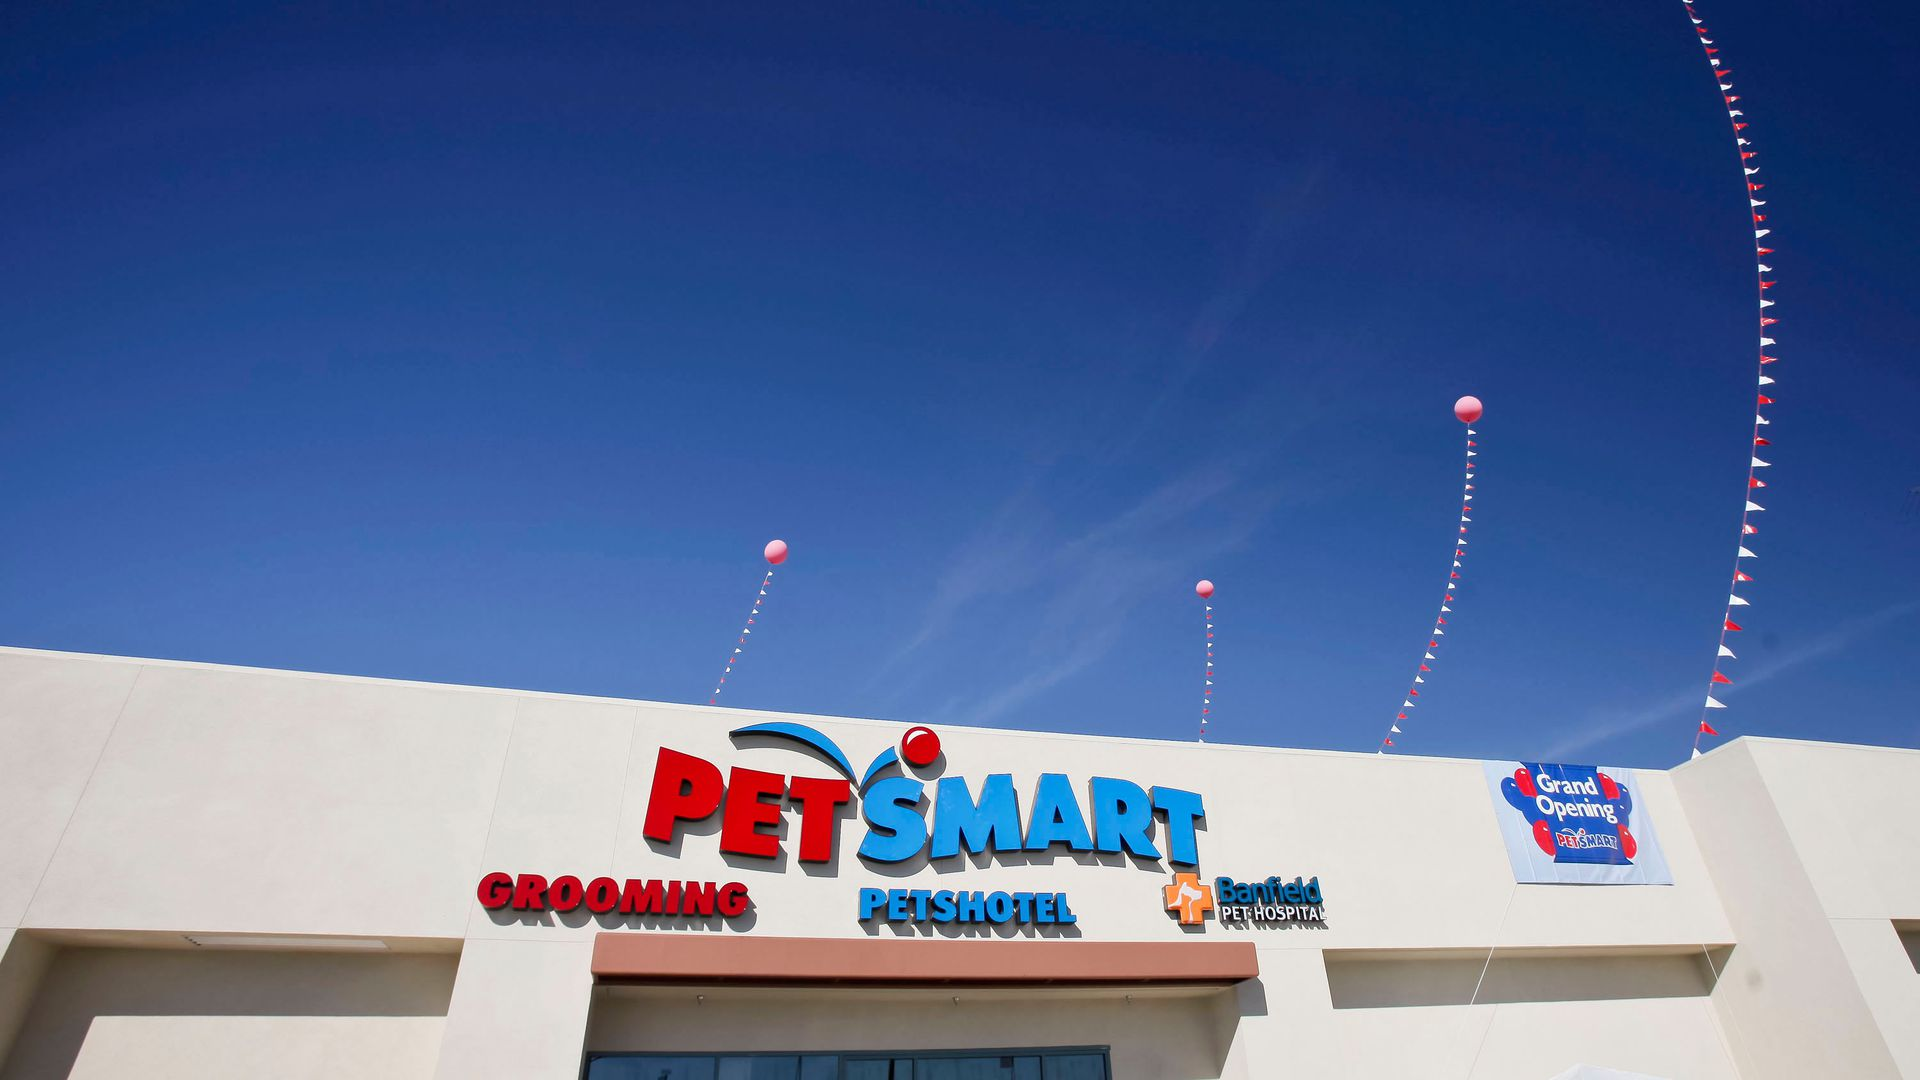 PetSmart store with balloons in the air.